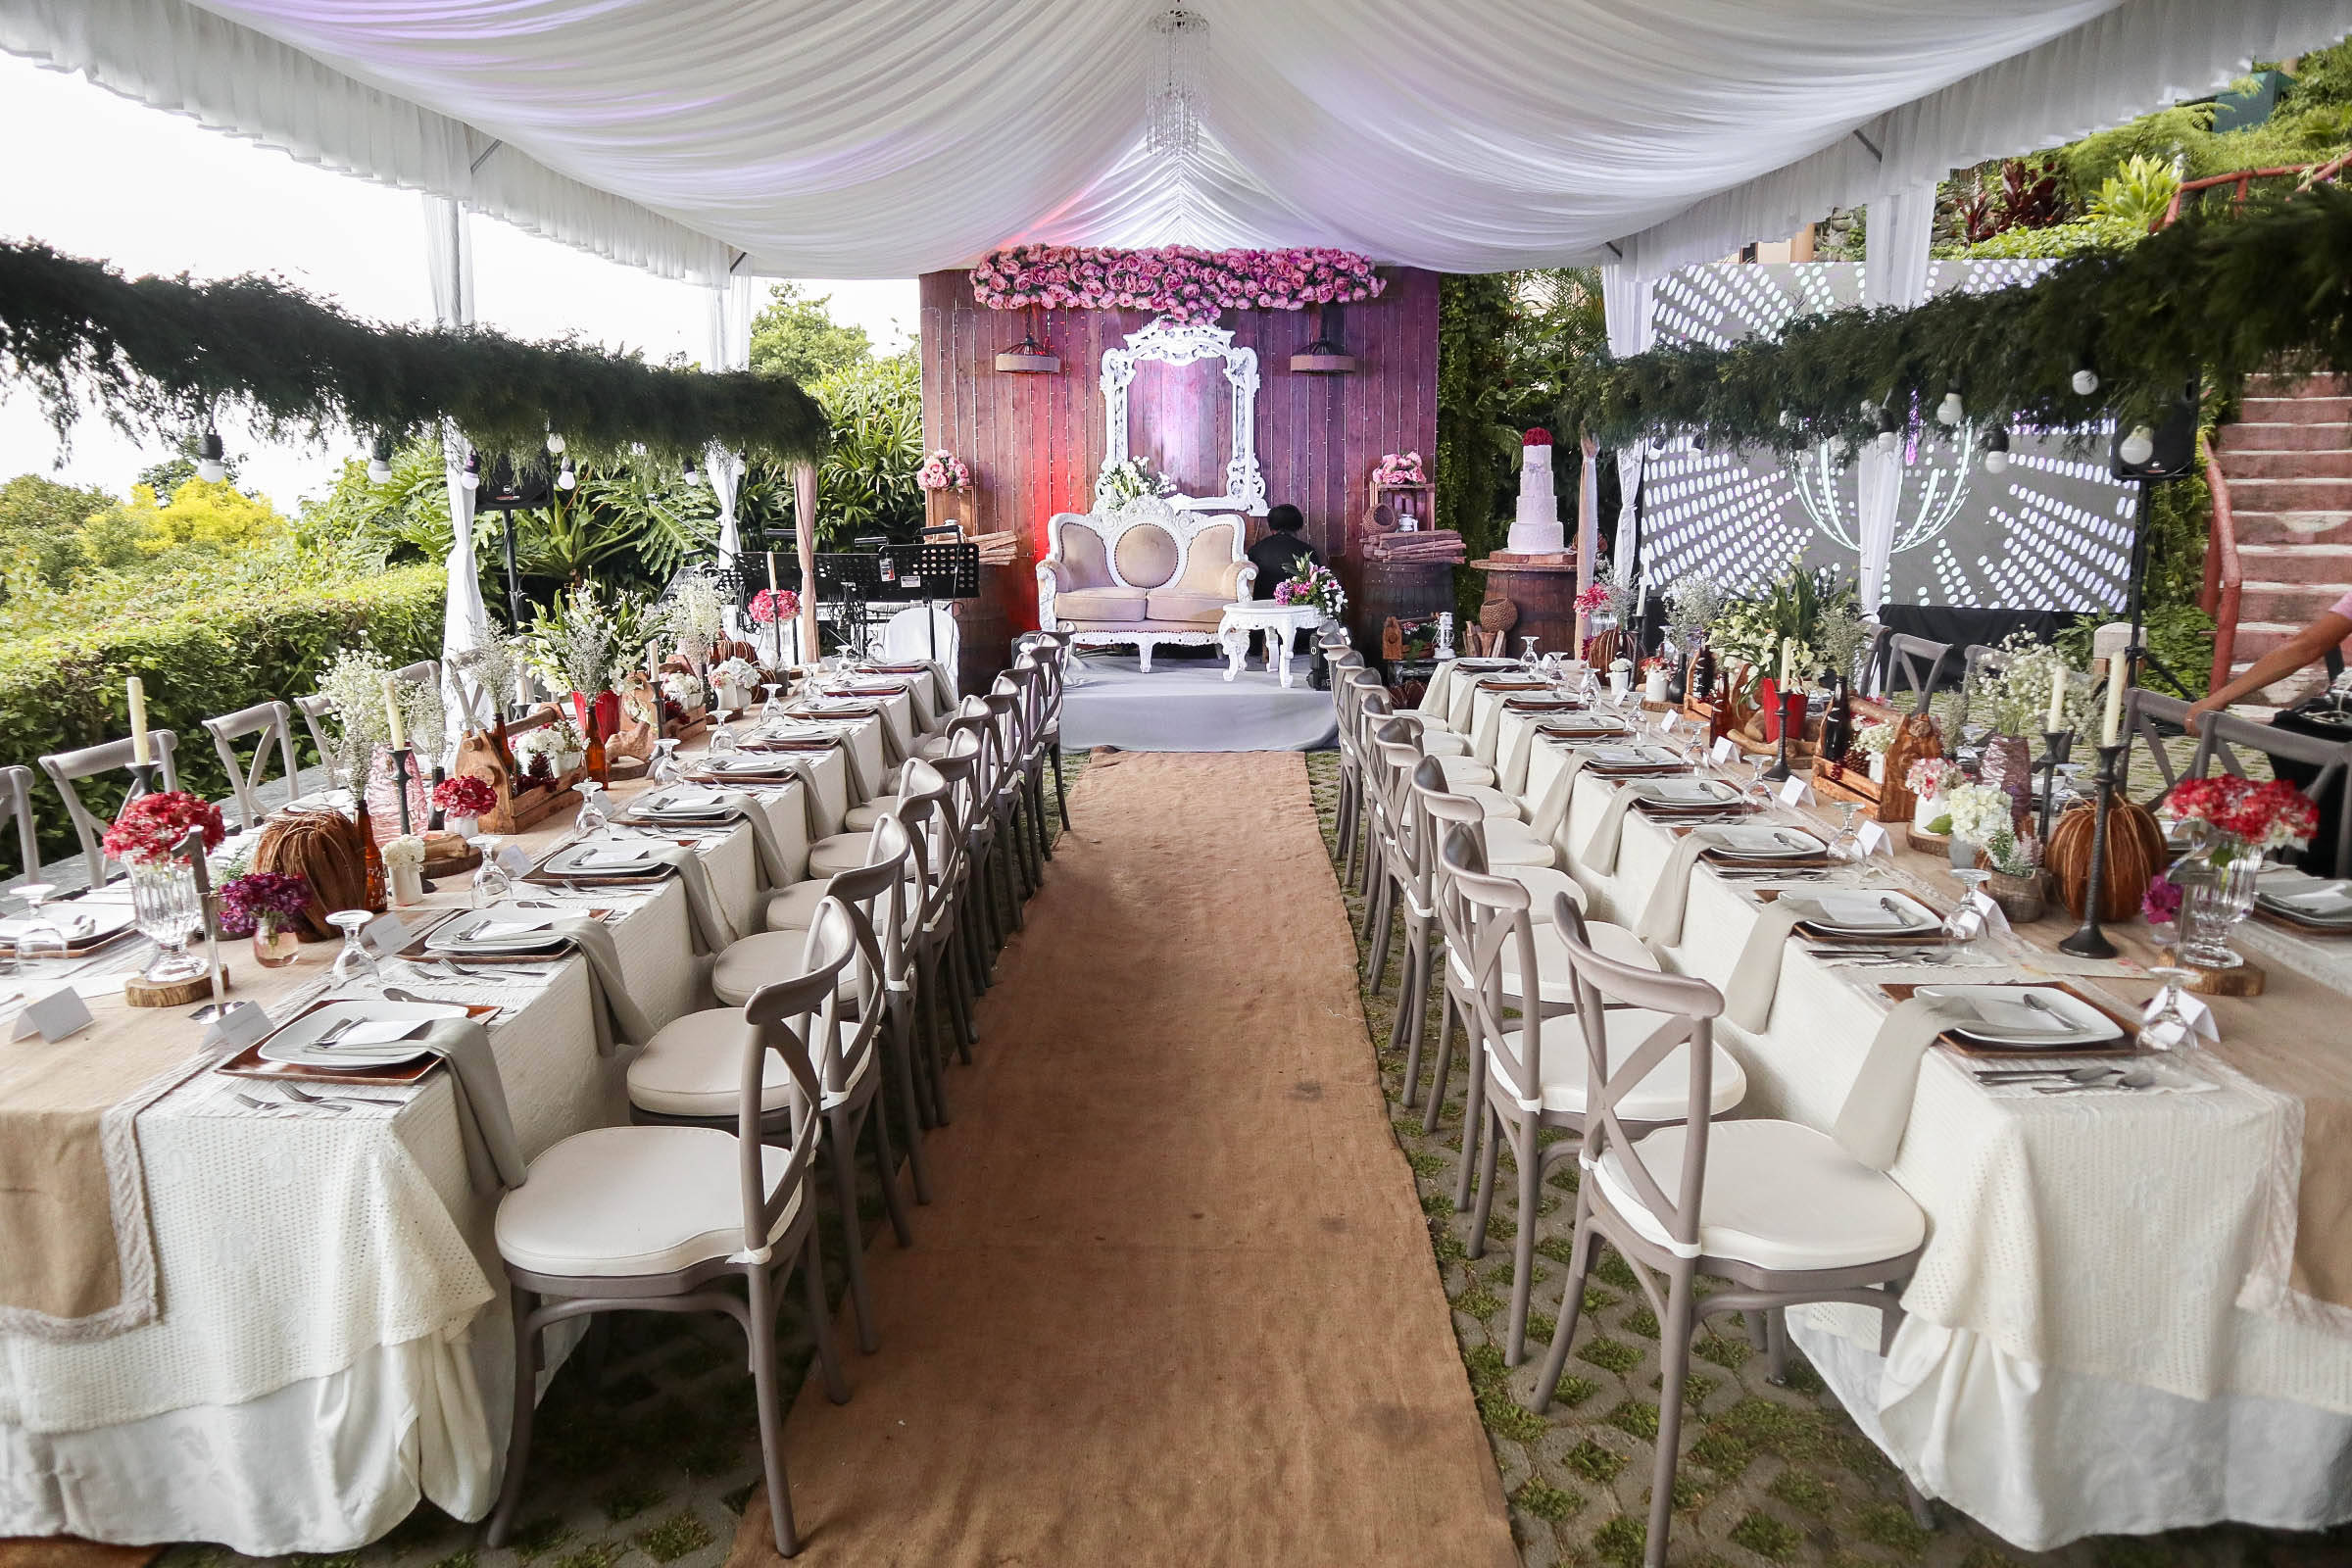 towns-delight-catering-venue-balai-taal-tagaytay-cavite